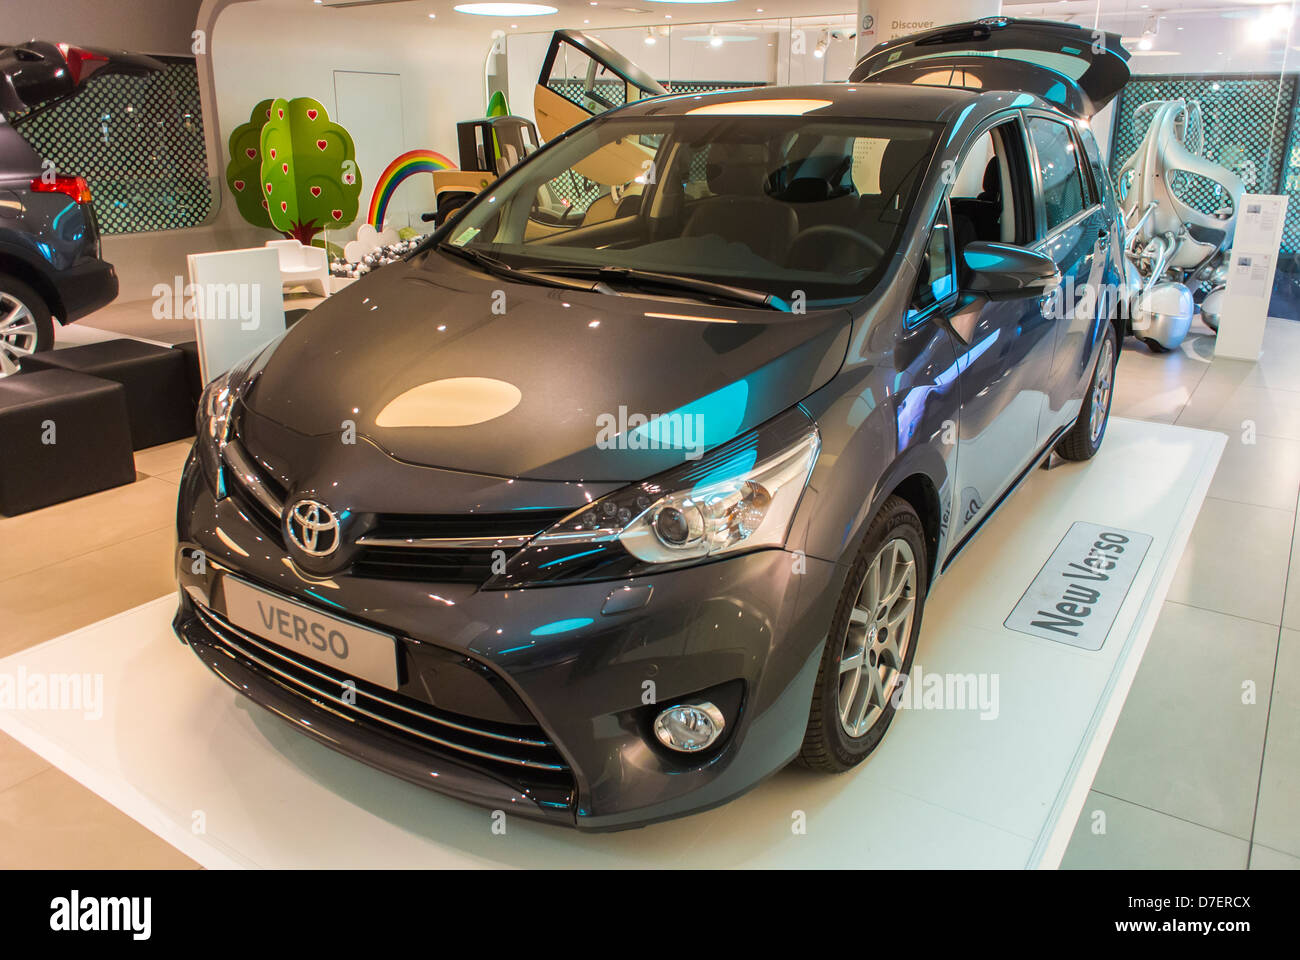 """Paris, France, Toyota Corporation, New Car Showroom, Inside Store, """"Verso"""" Car, on Display Stock Photo"""